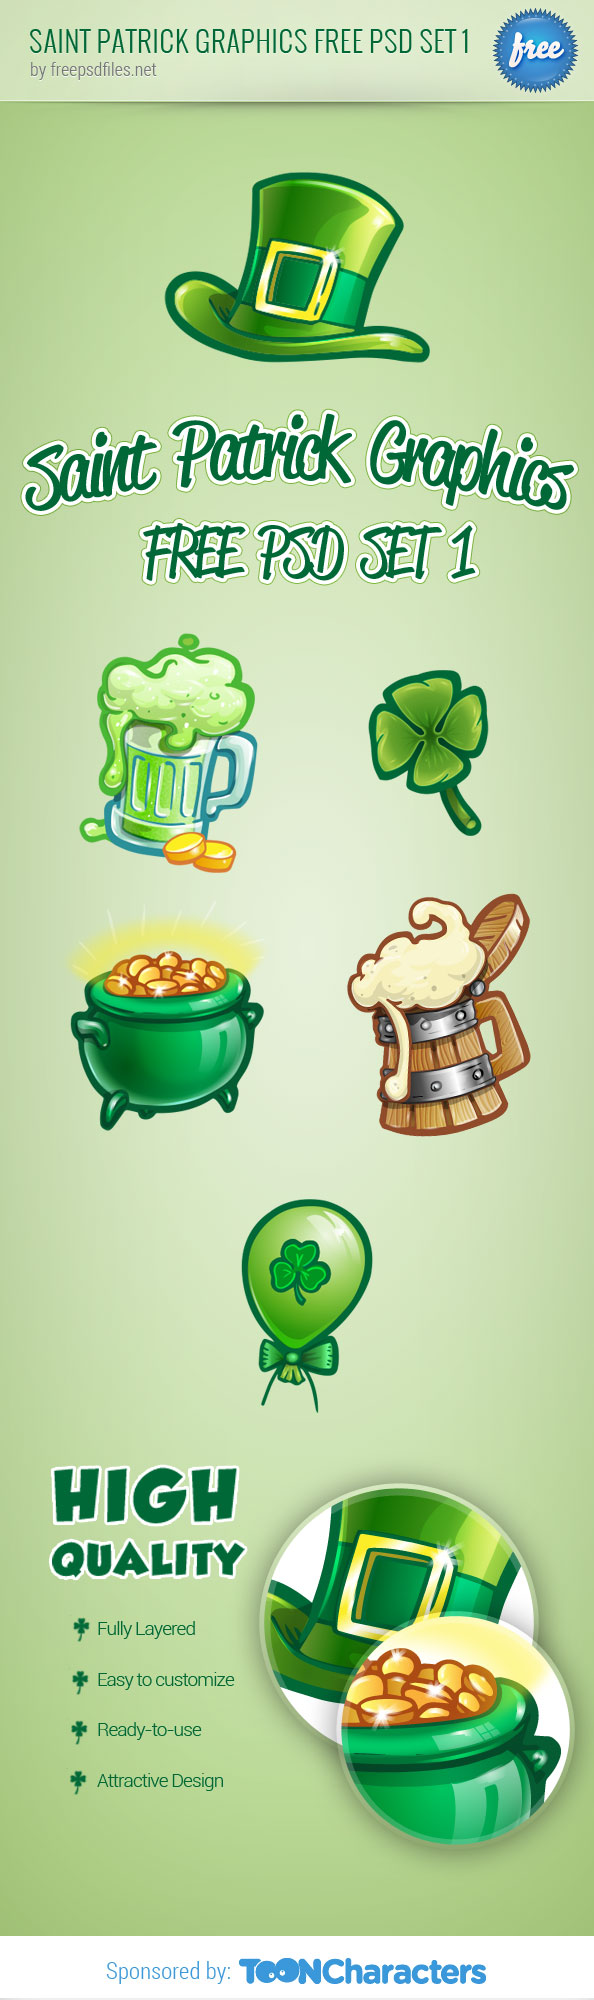 Saint Patrick Graphics Free PSD-Set 1